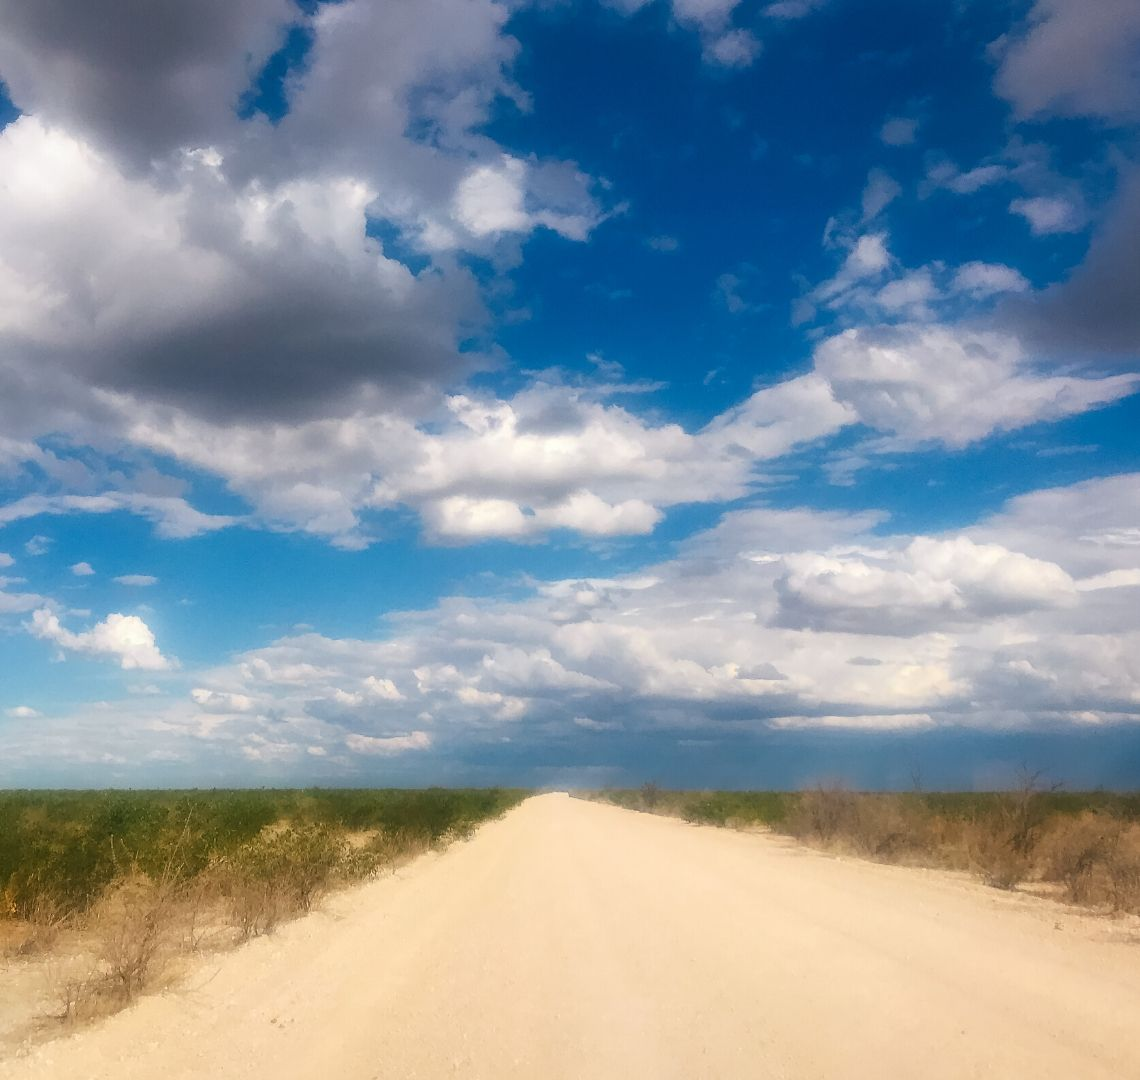 2 Week Namibia Itinerary - a long sandy road on the way to Etosha. The sand is almost white and there is green vegetation on each side. The sky is blue but there are lots of big white fluffy clouds too.